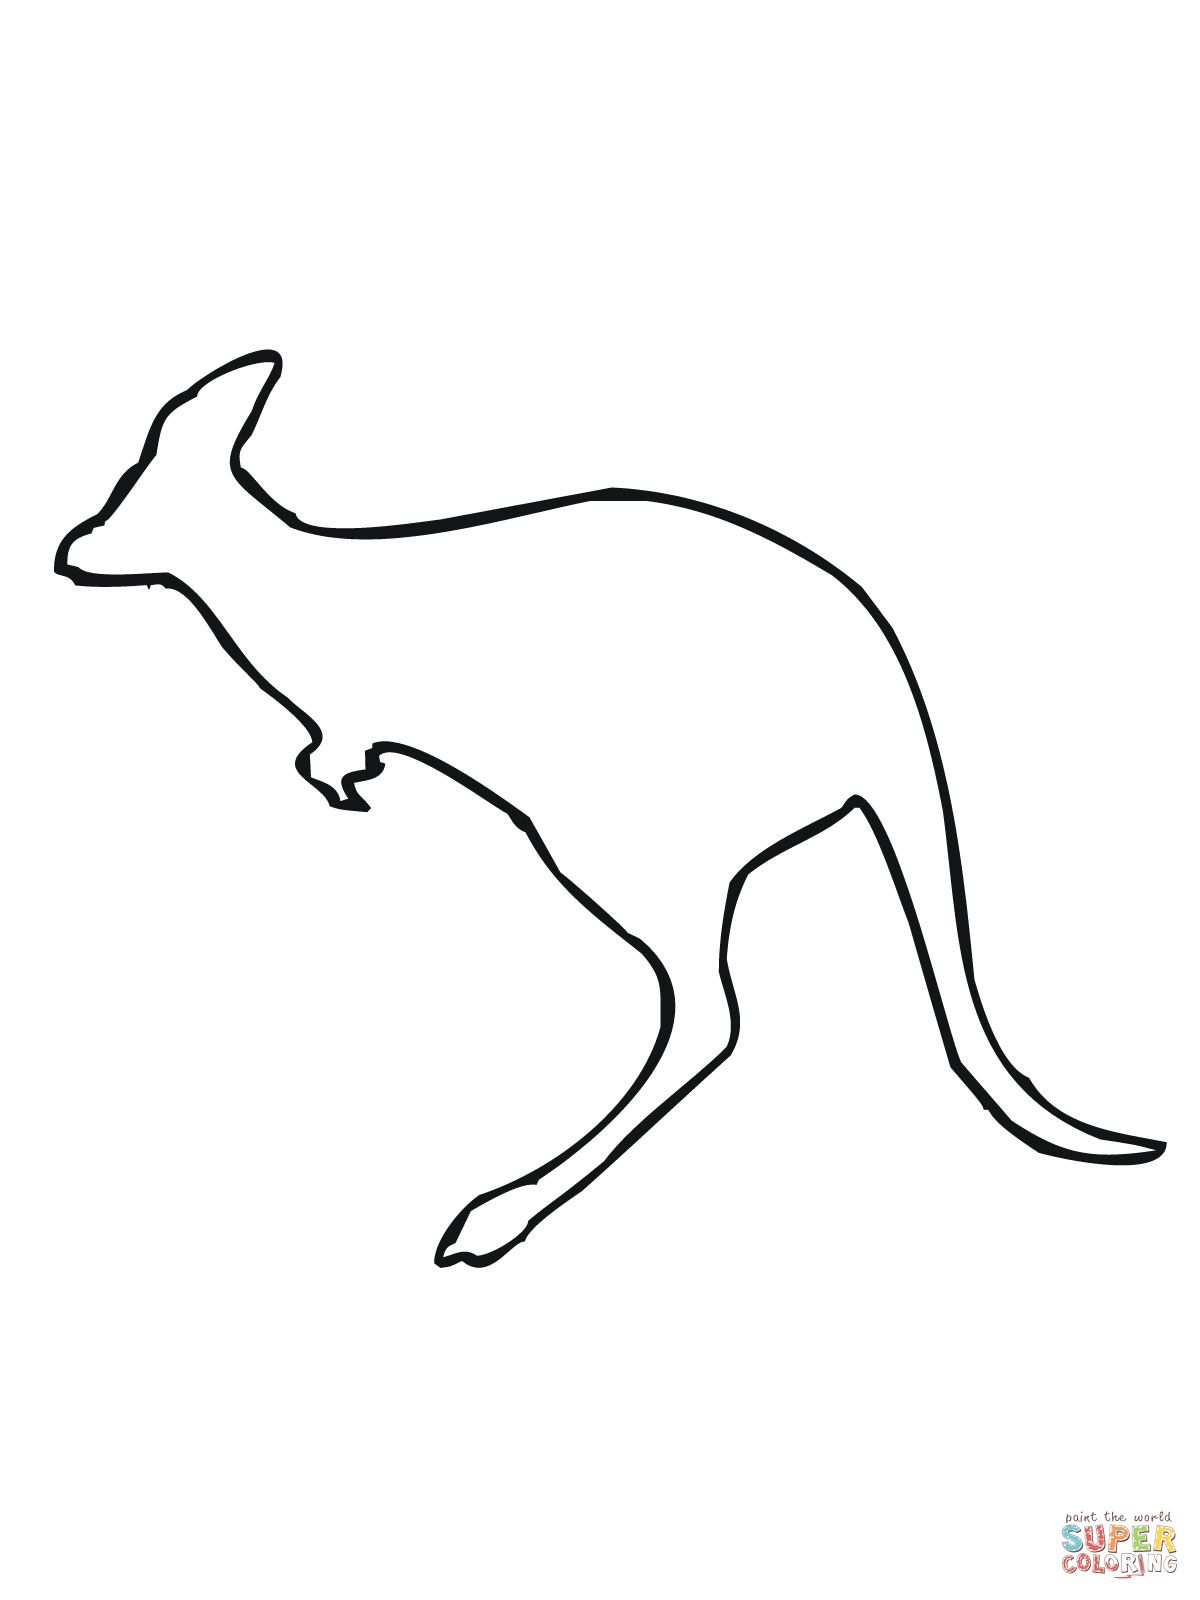 leaping kangaroo outline coloring page supercoloring com tats